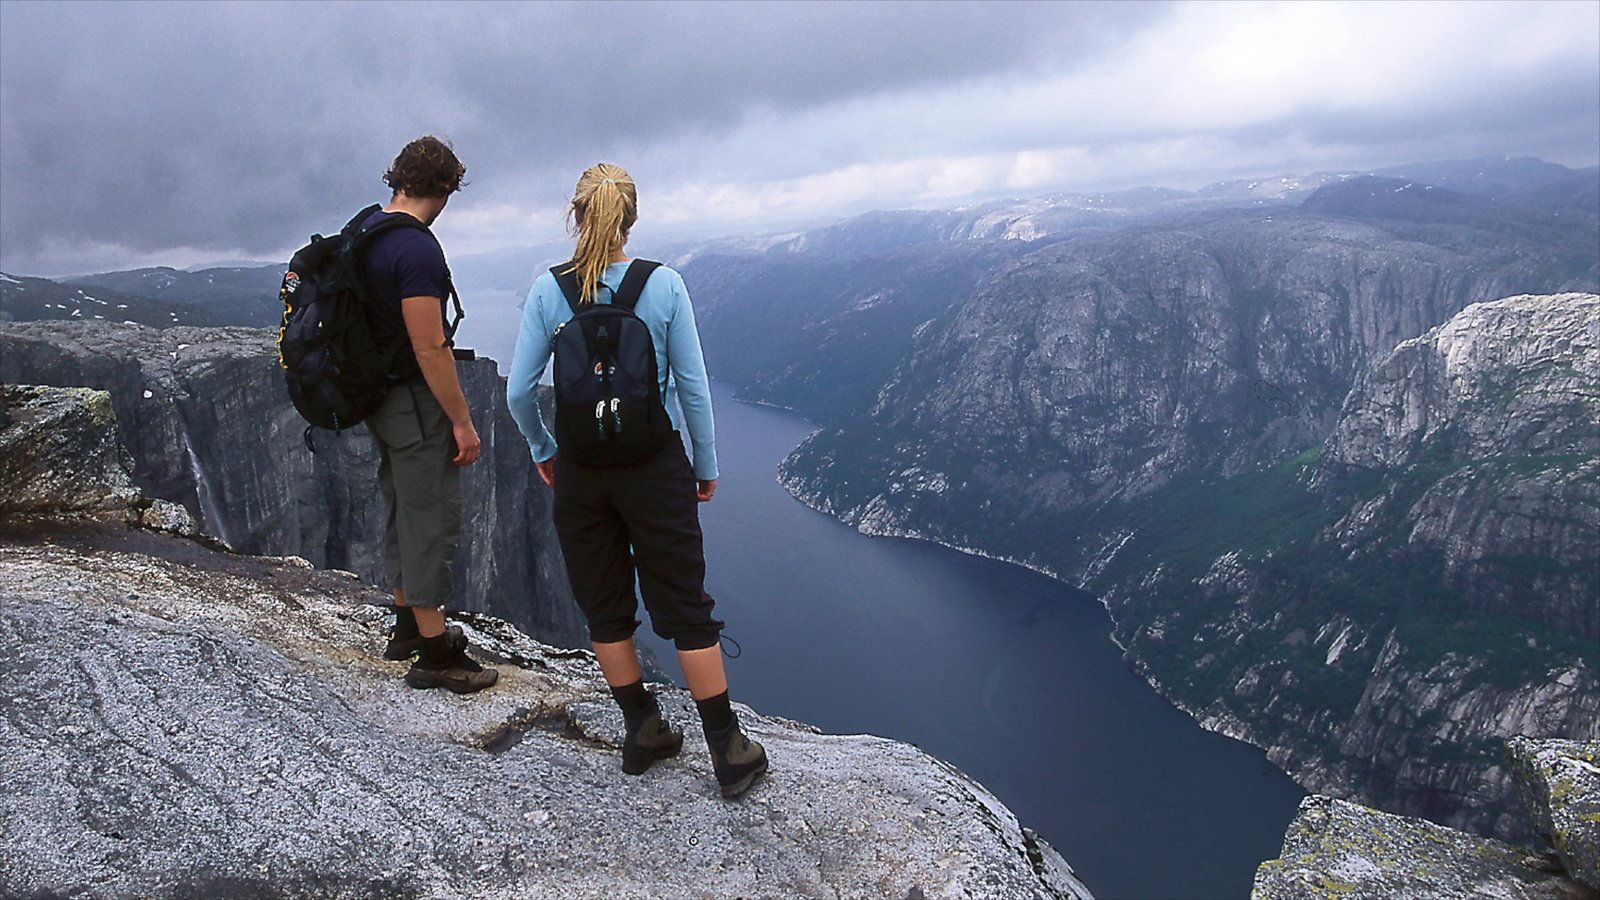 Kjerag which includes views, mountains and hiking or walking